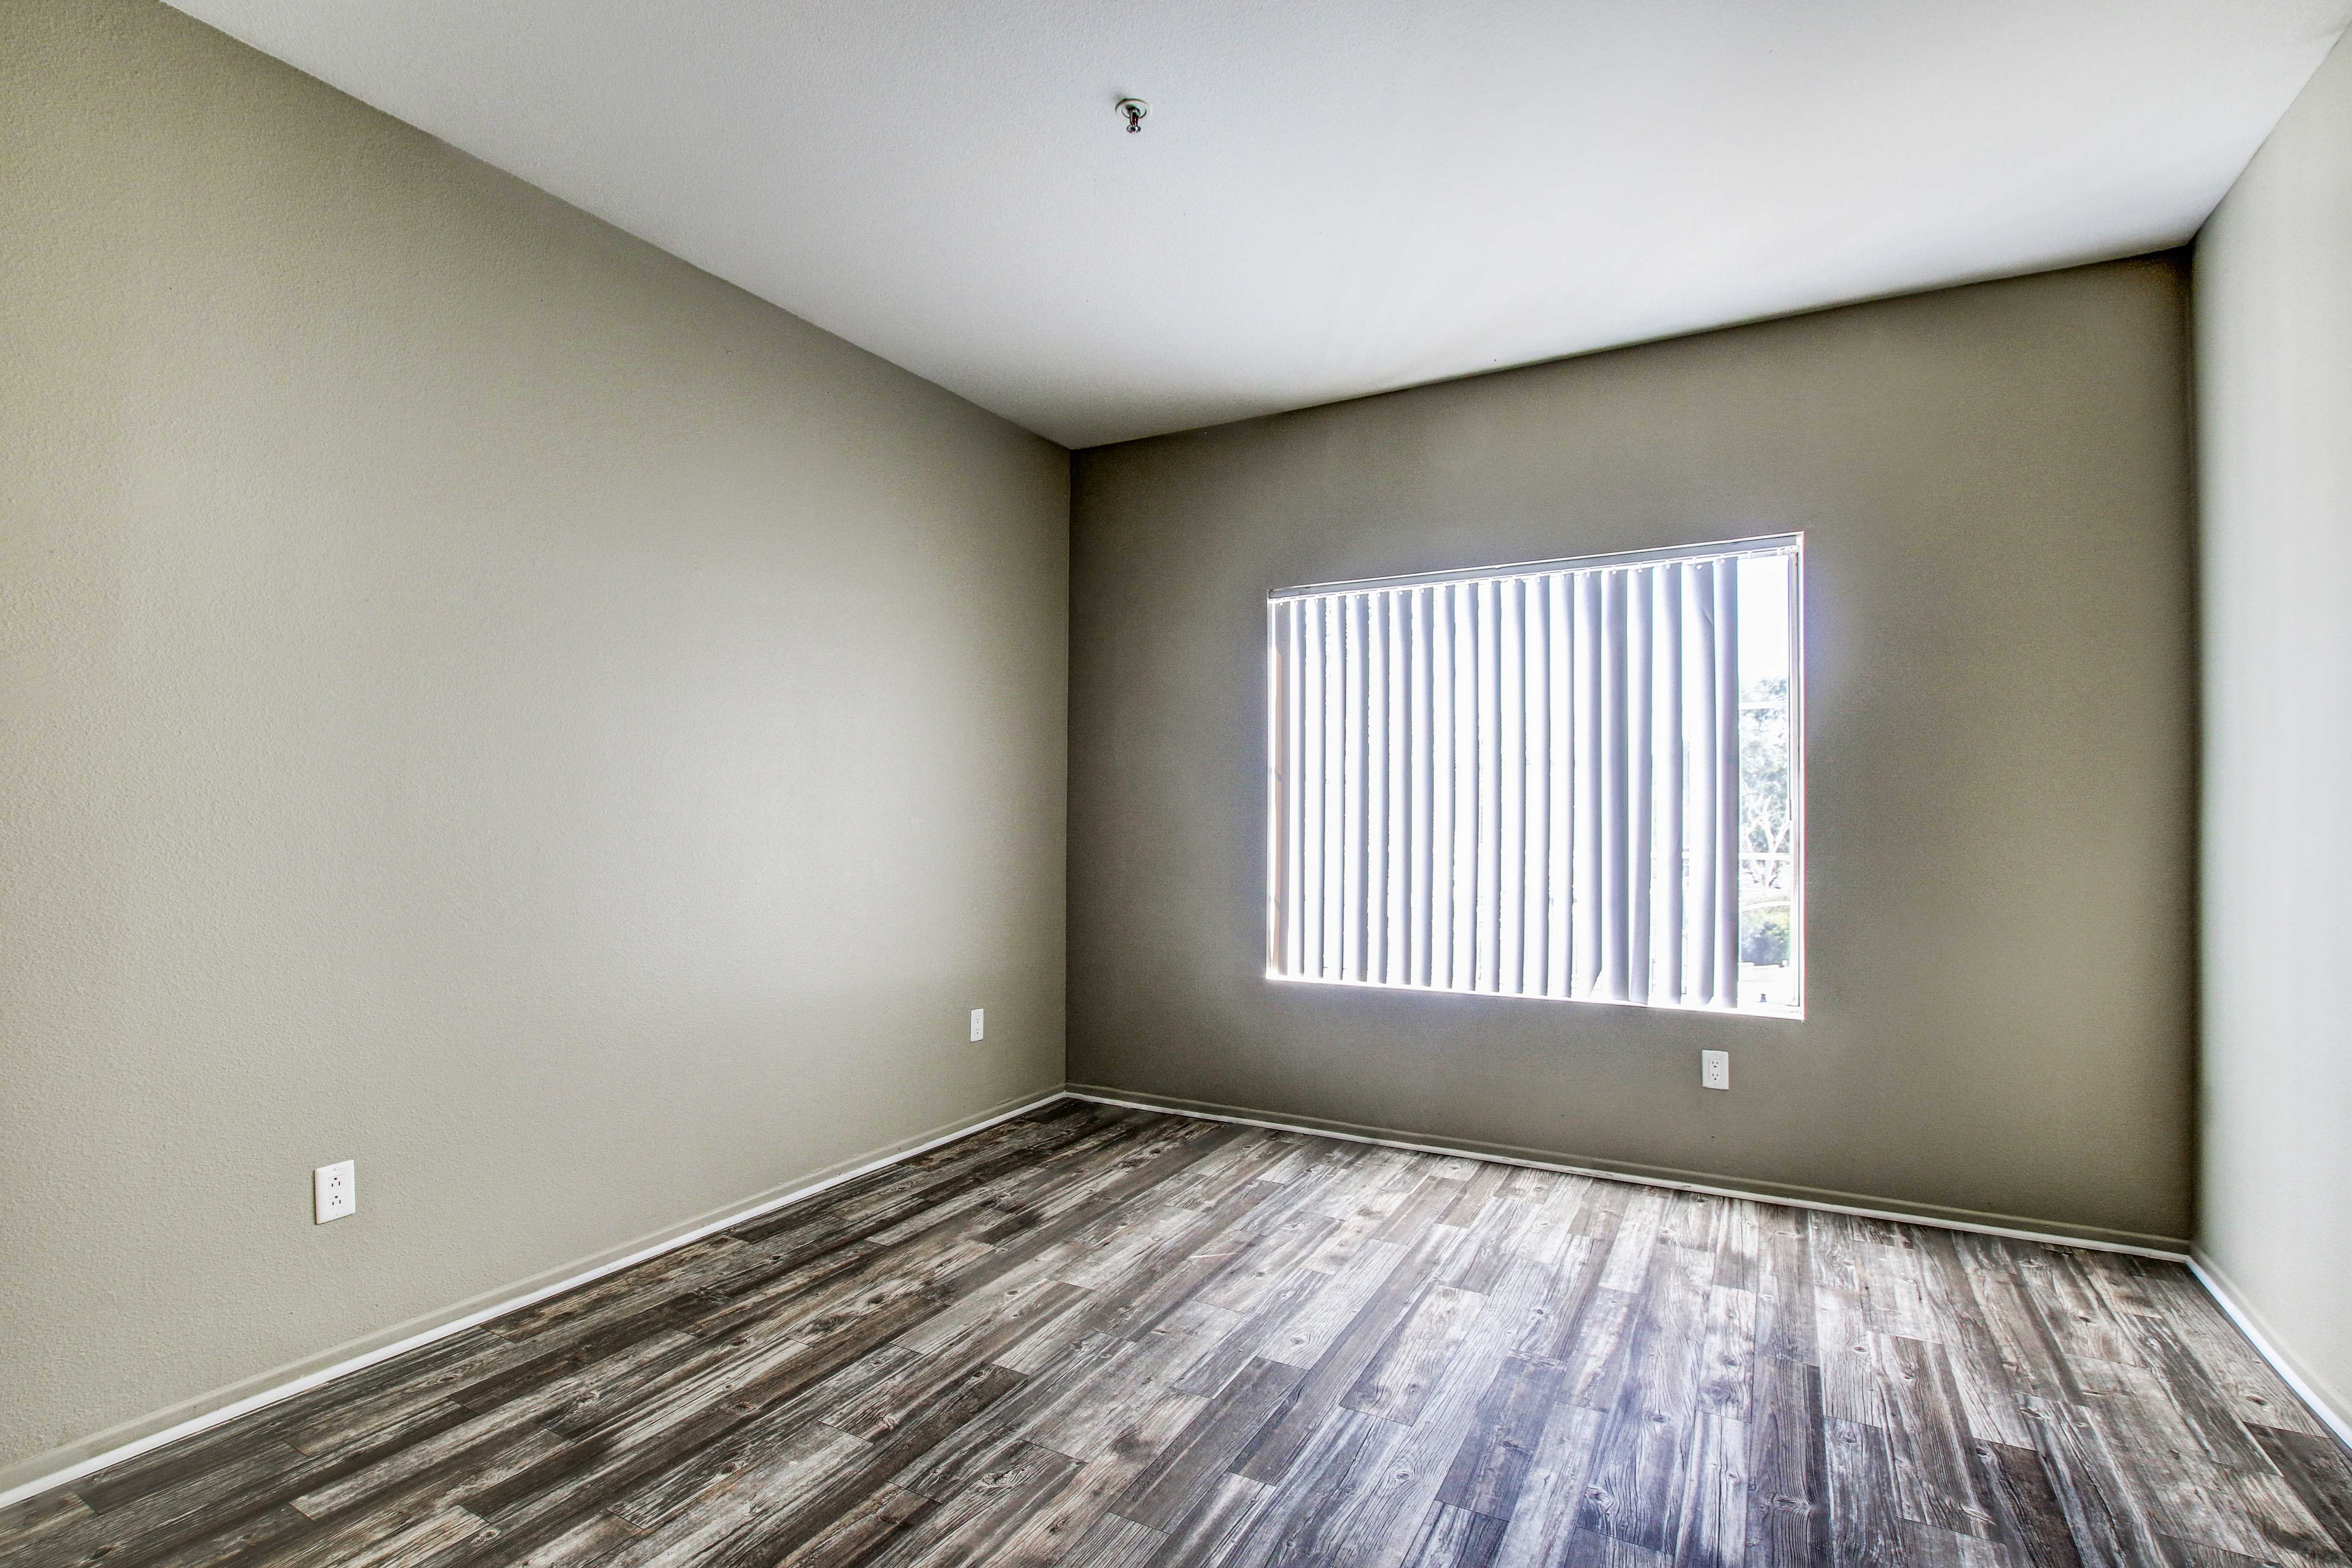 Bedroom at apartments in San Diego, California